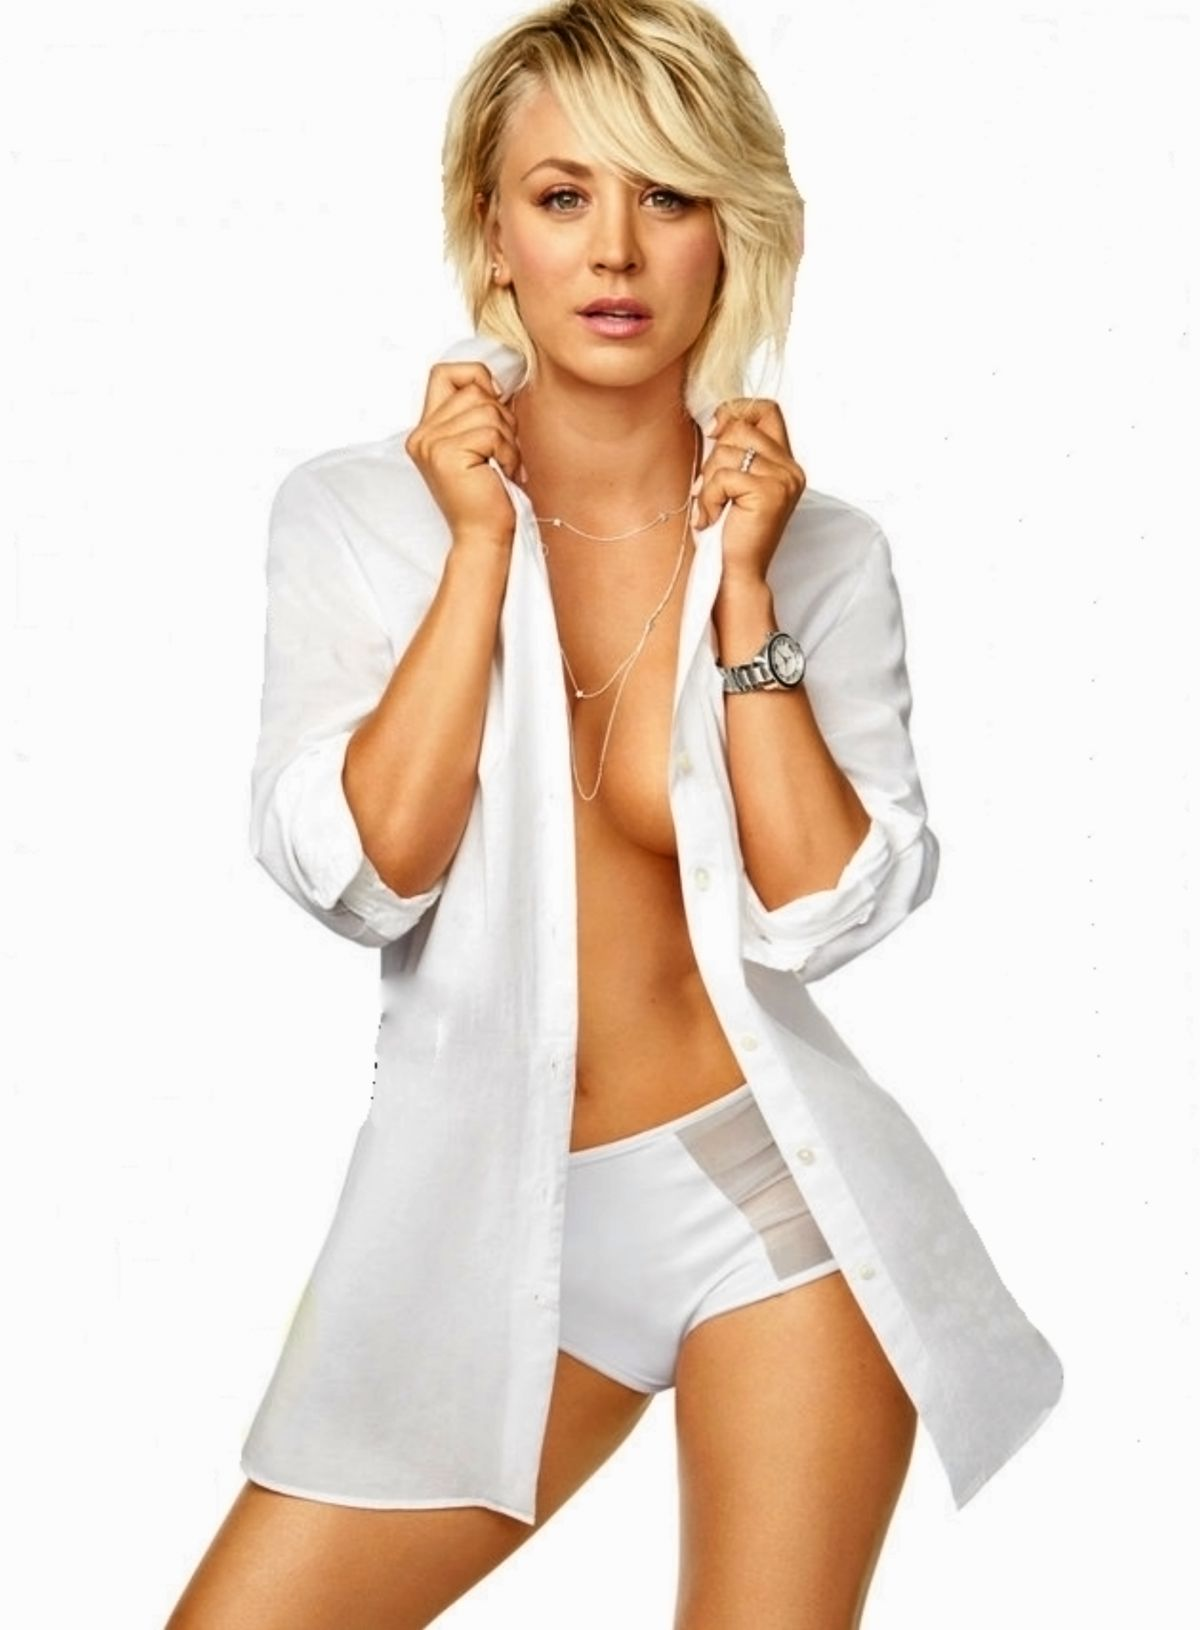 Kaley Cuoco Haircut 2016 | hairstylegalleries.com